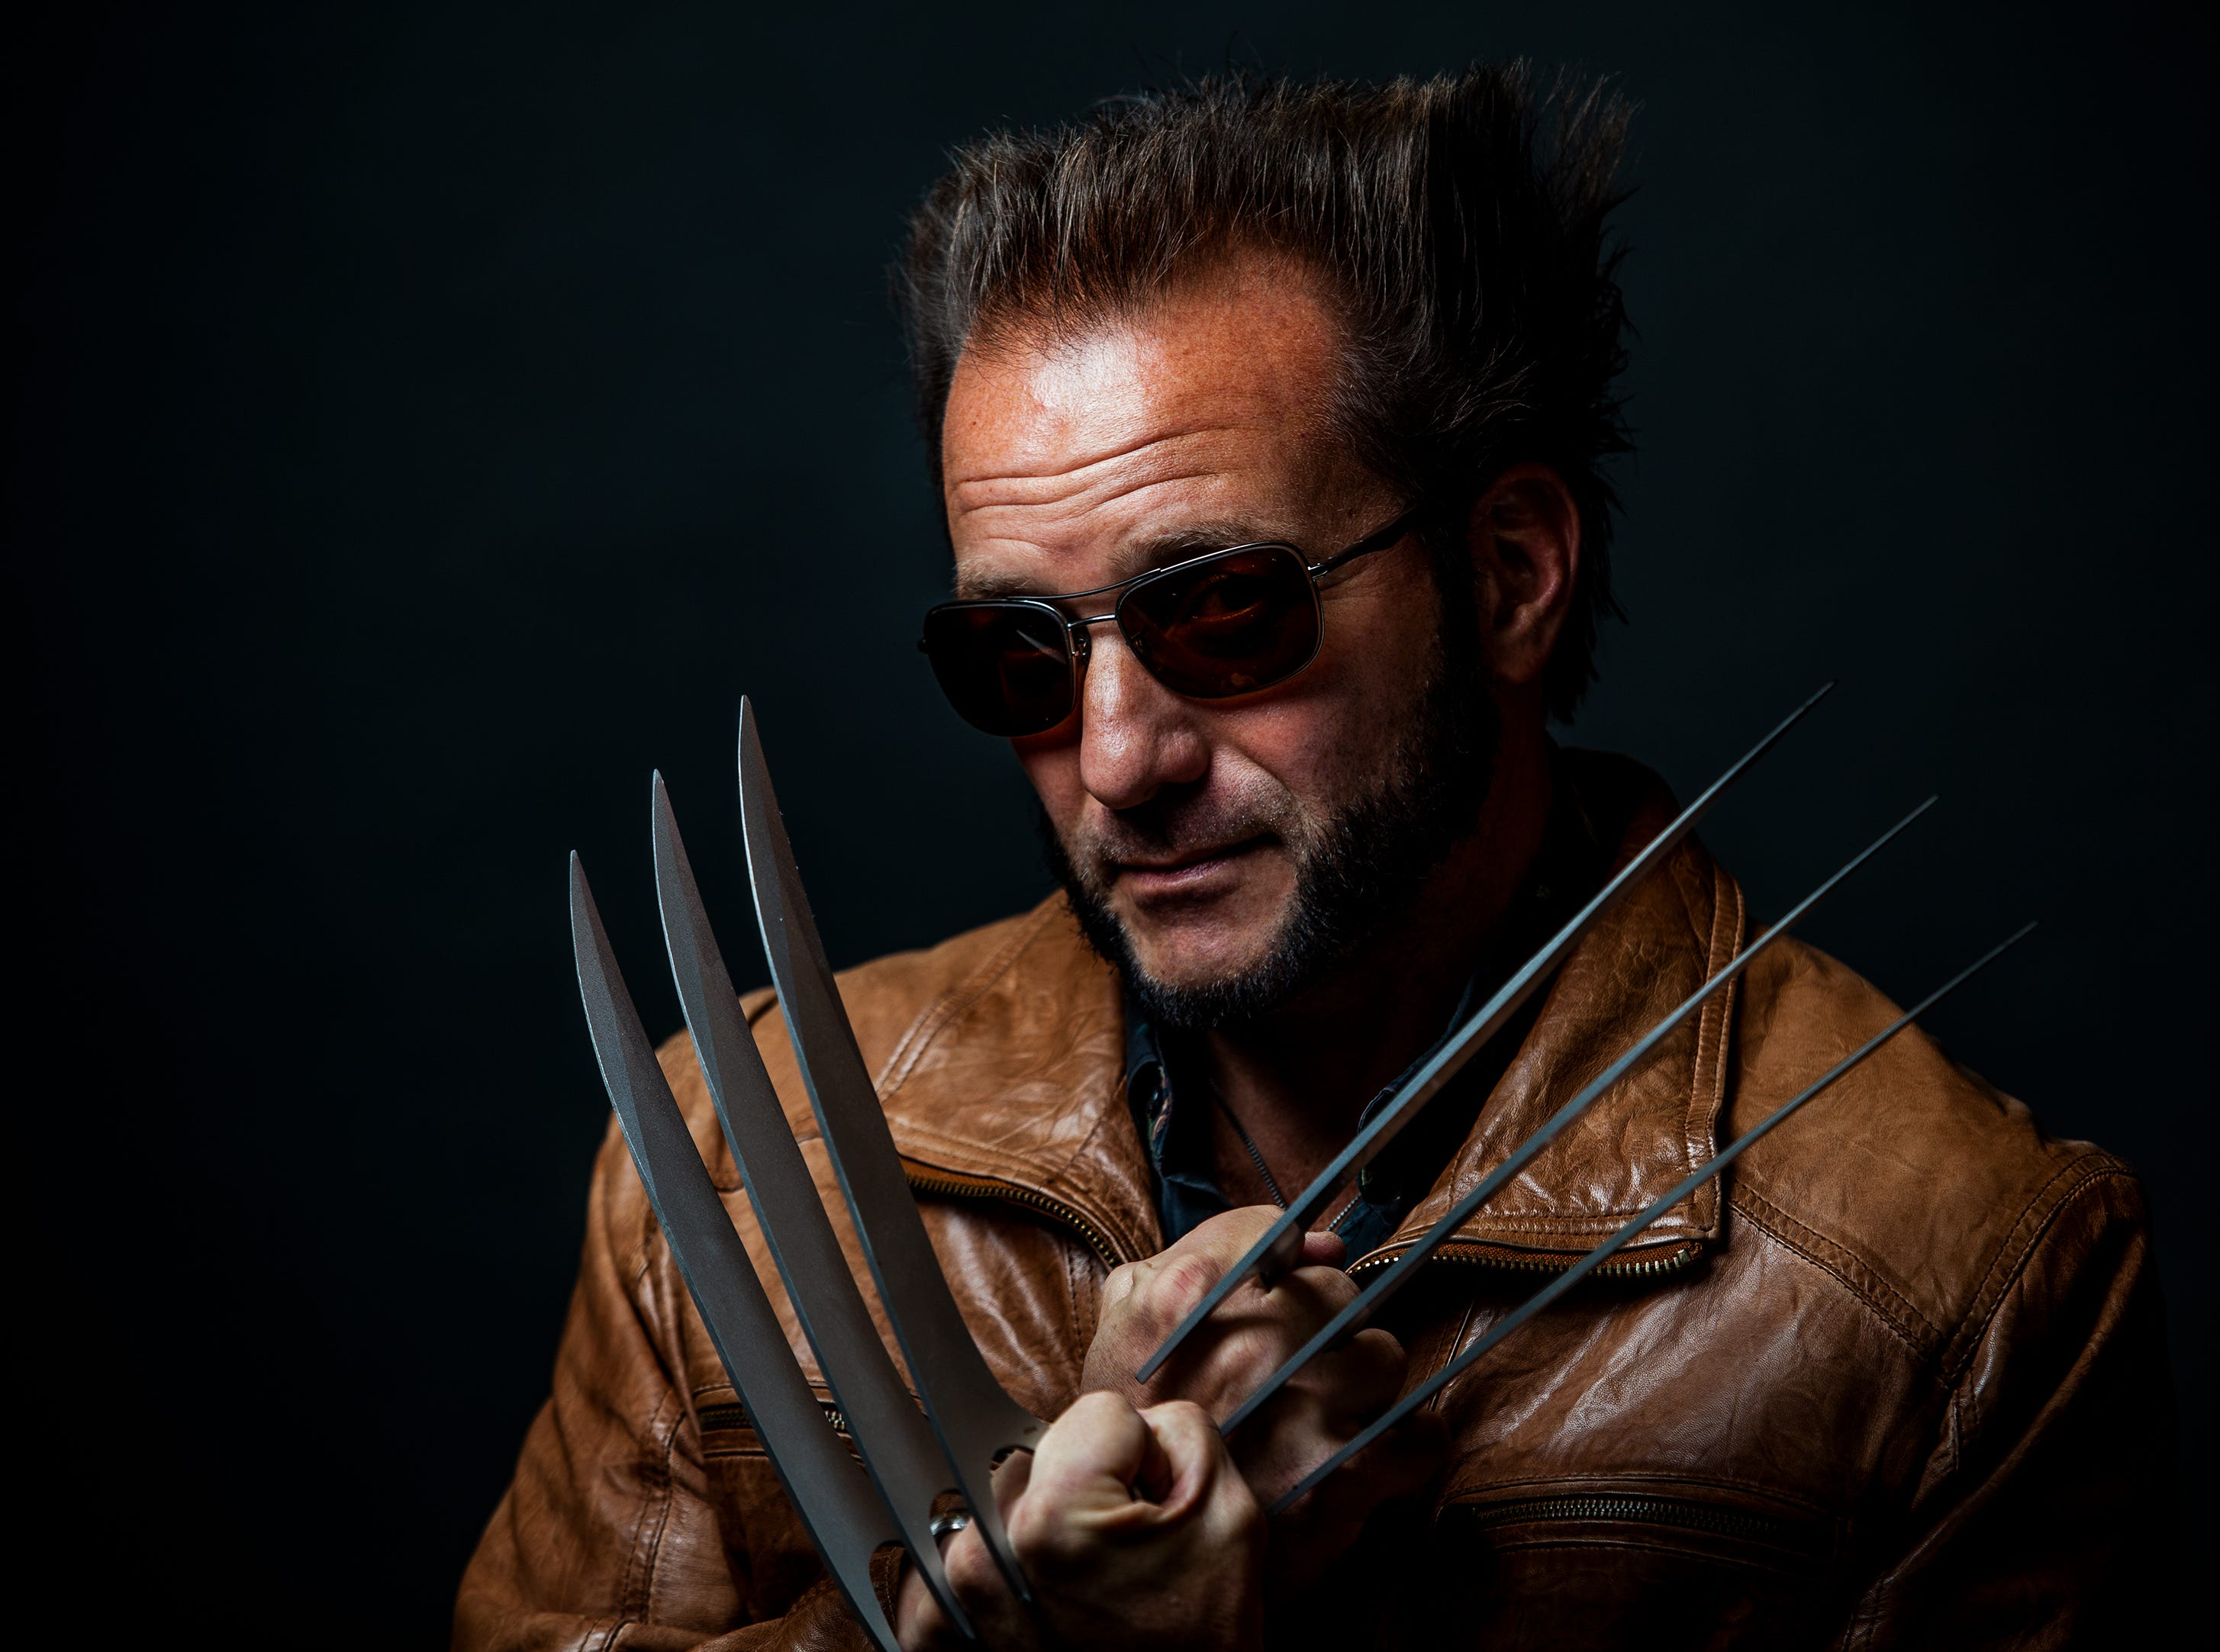 Dave Tullock poses as Wolverine for the Louisville Supercon at the Kentucky International Convention Center on Friday, Nov. 30, 2018.